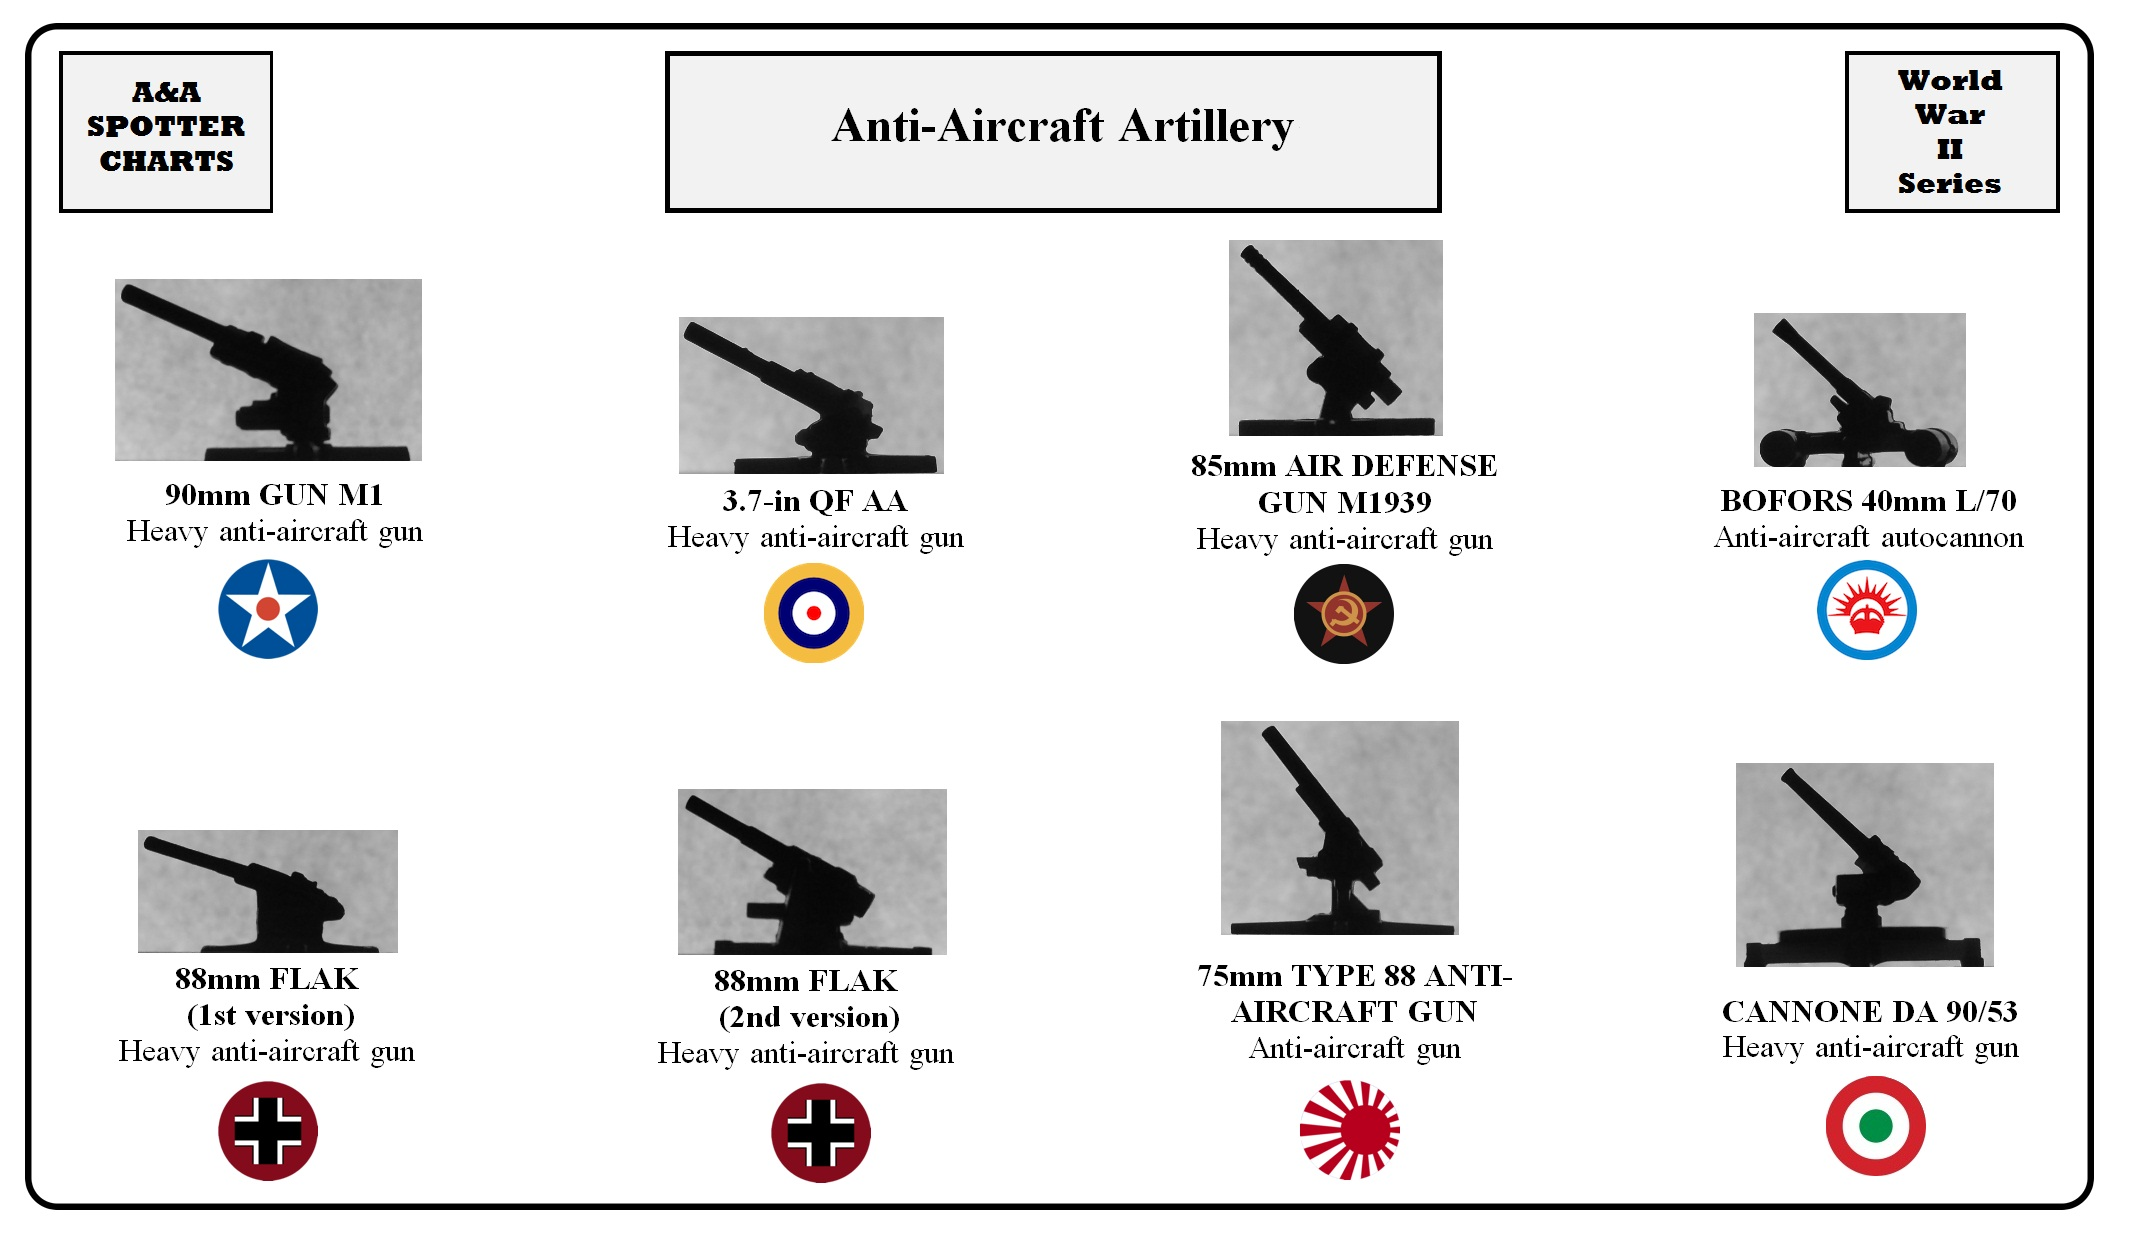 WW2-Land-AntiAircraft Artillery.jpg